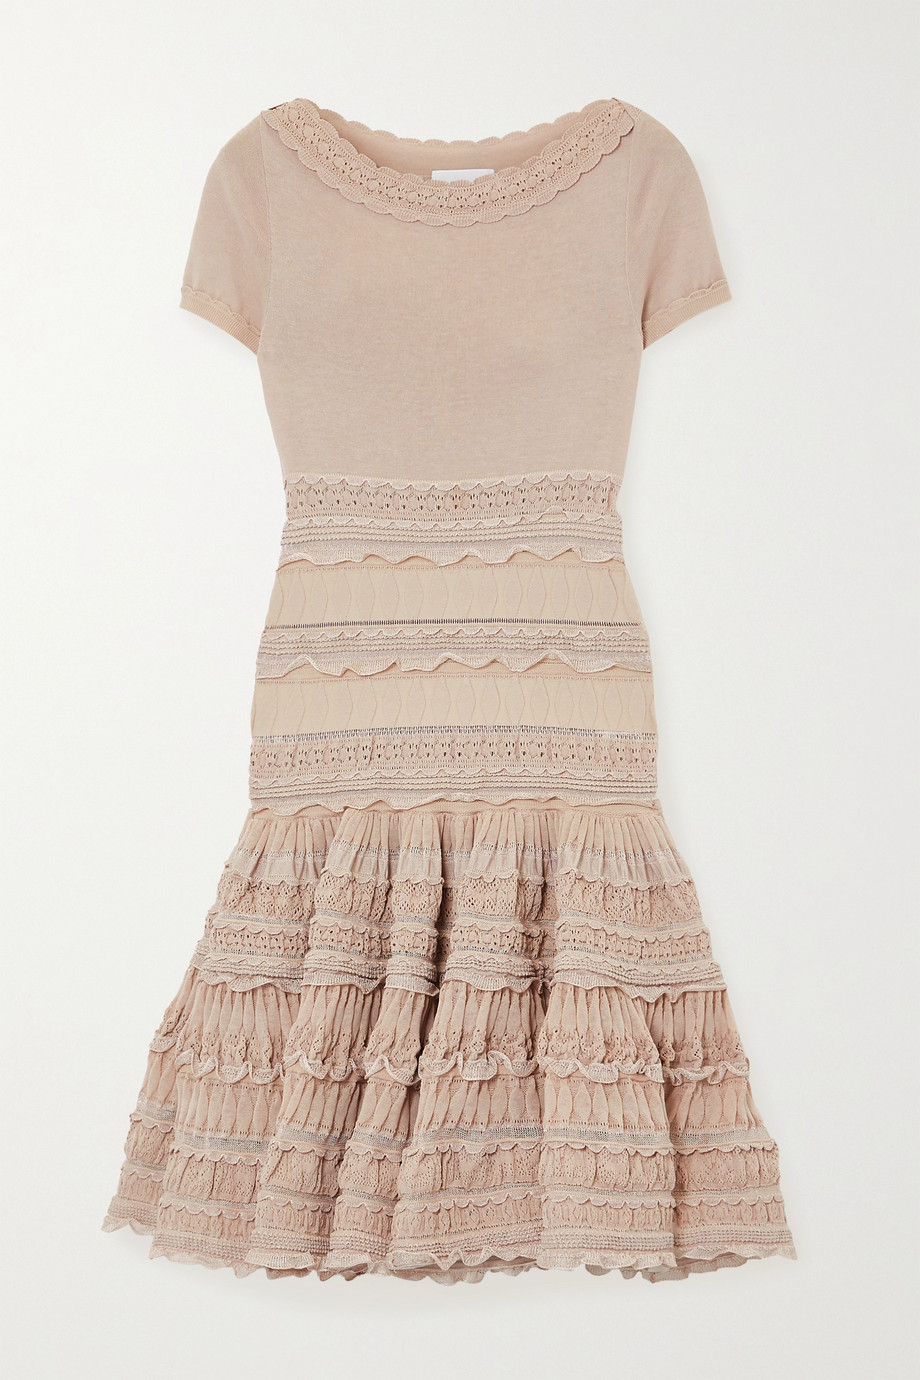 ALAÏA Editions ruffled crocheted cotton-blend mini dress